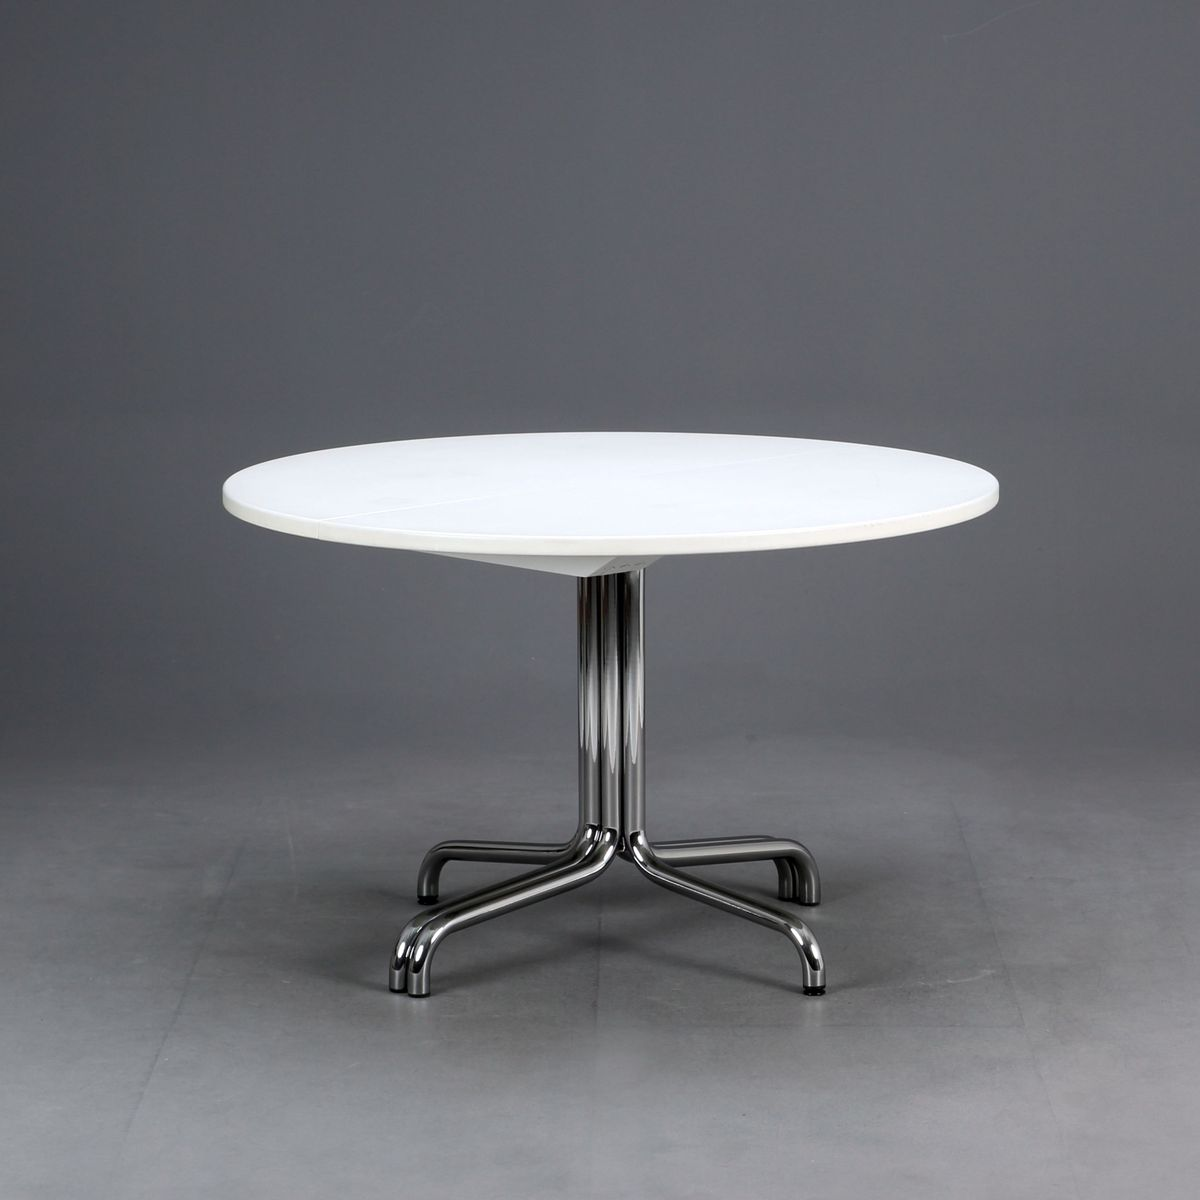 Chromed Steel Extendable S1051 Table from Thonet, 1980s